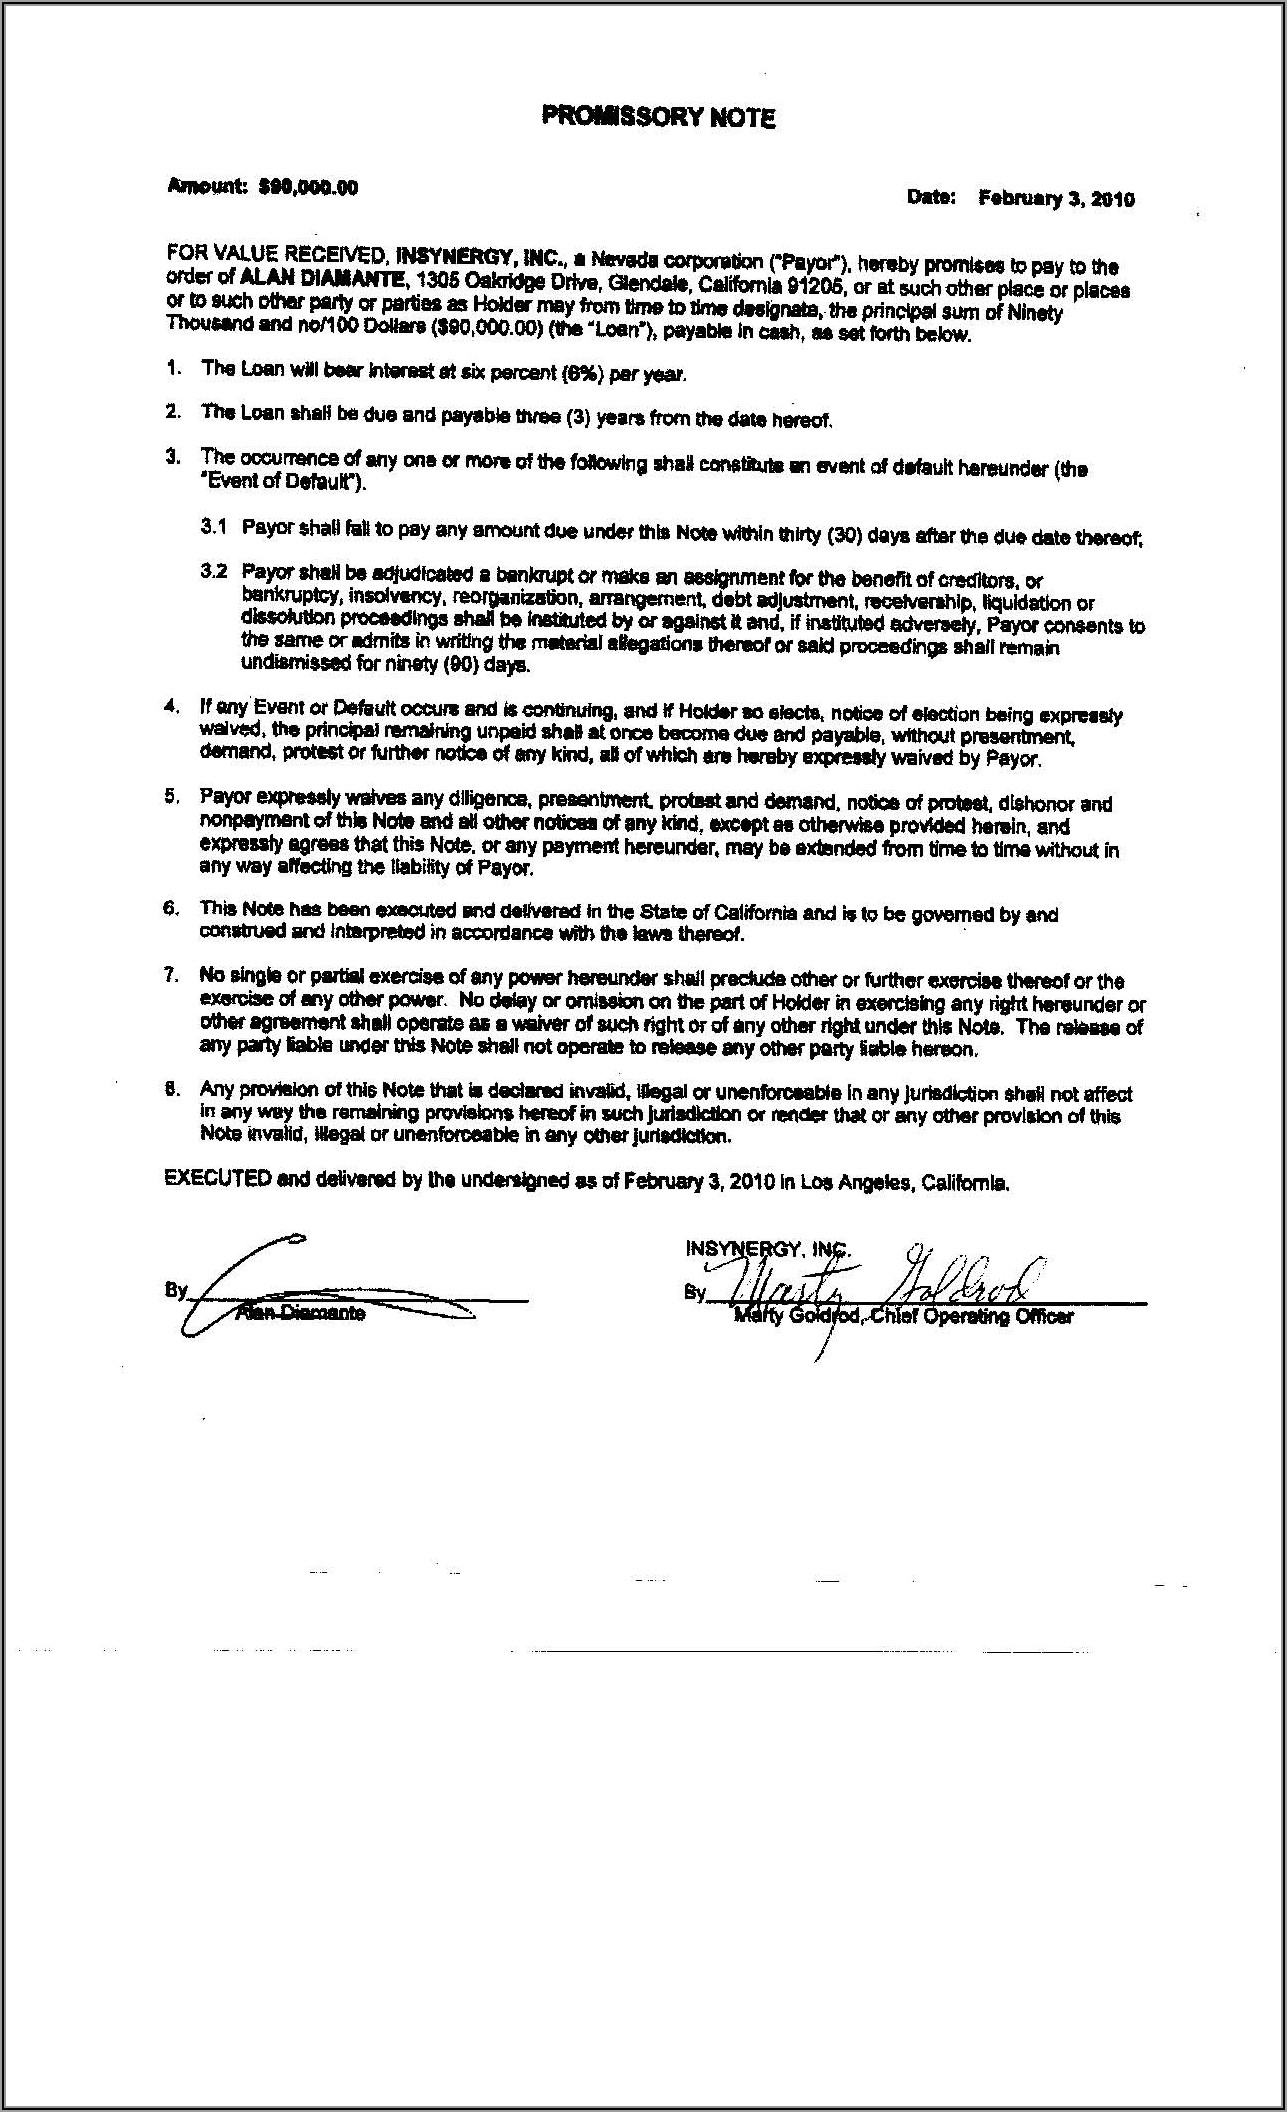 Form Of Promissory Note Sec